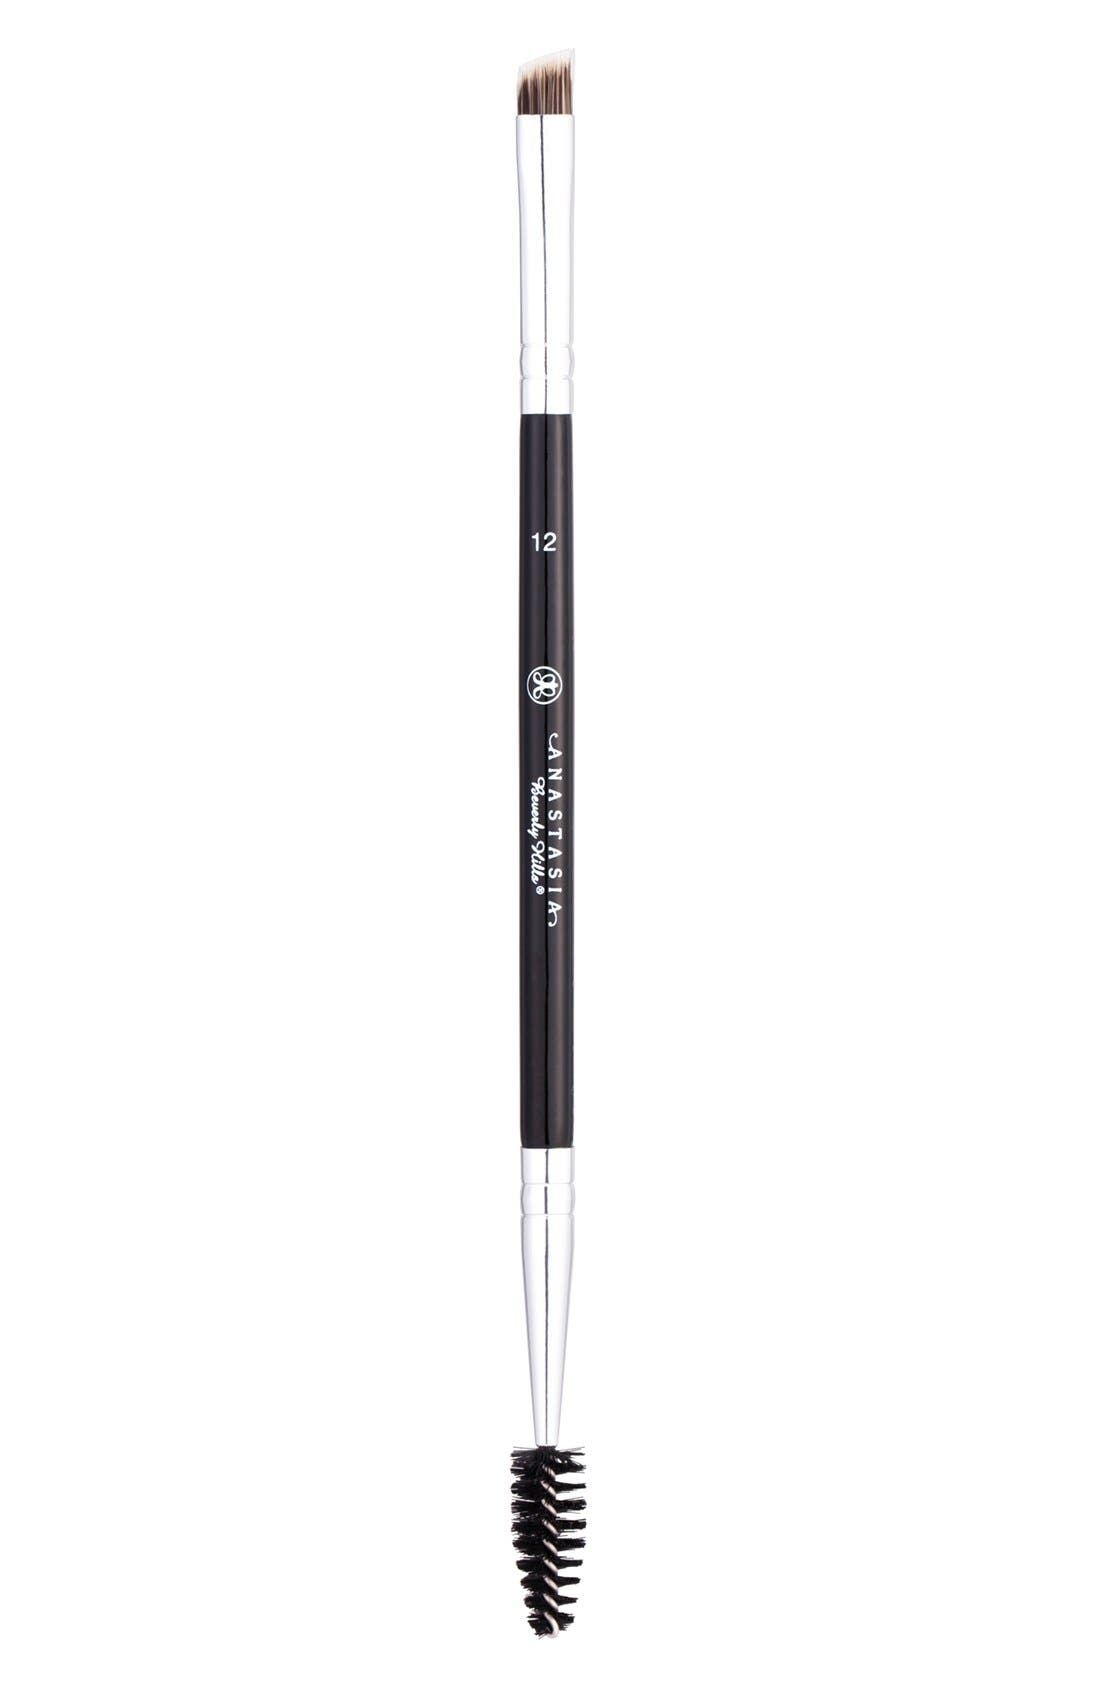 #12 Large Synthetic Duo Brow Brush,                             Main thumbnail 1, color,                             NO COLOR